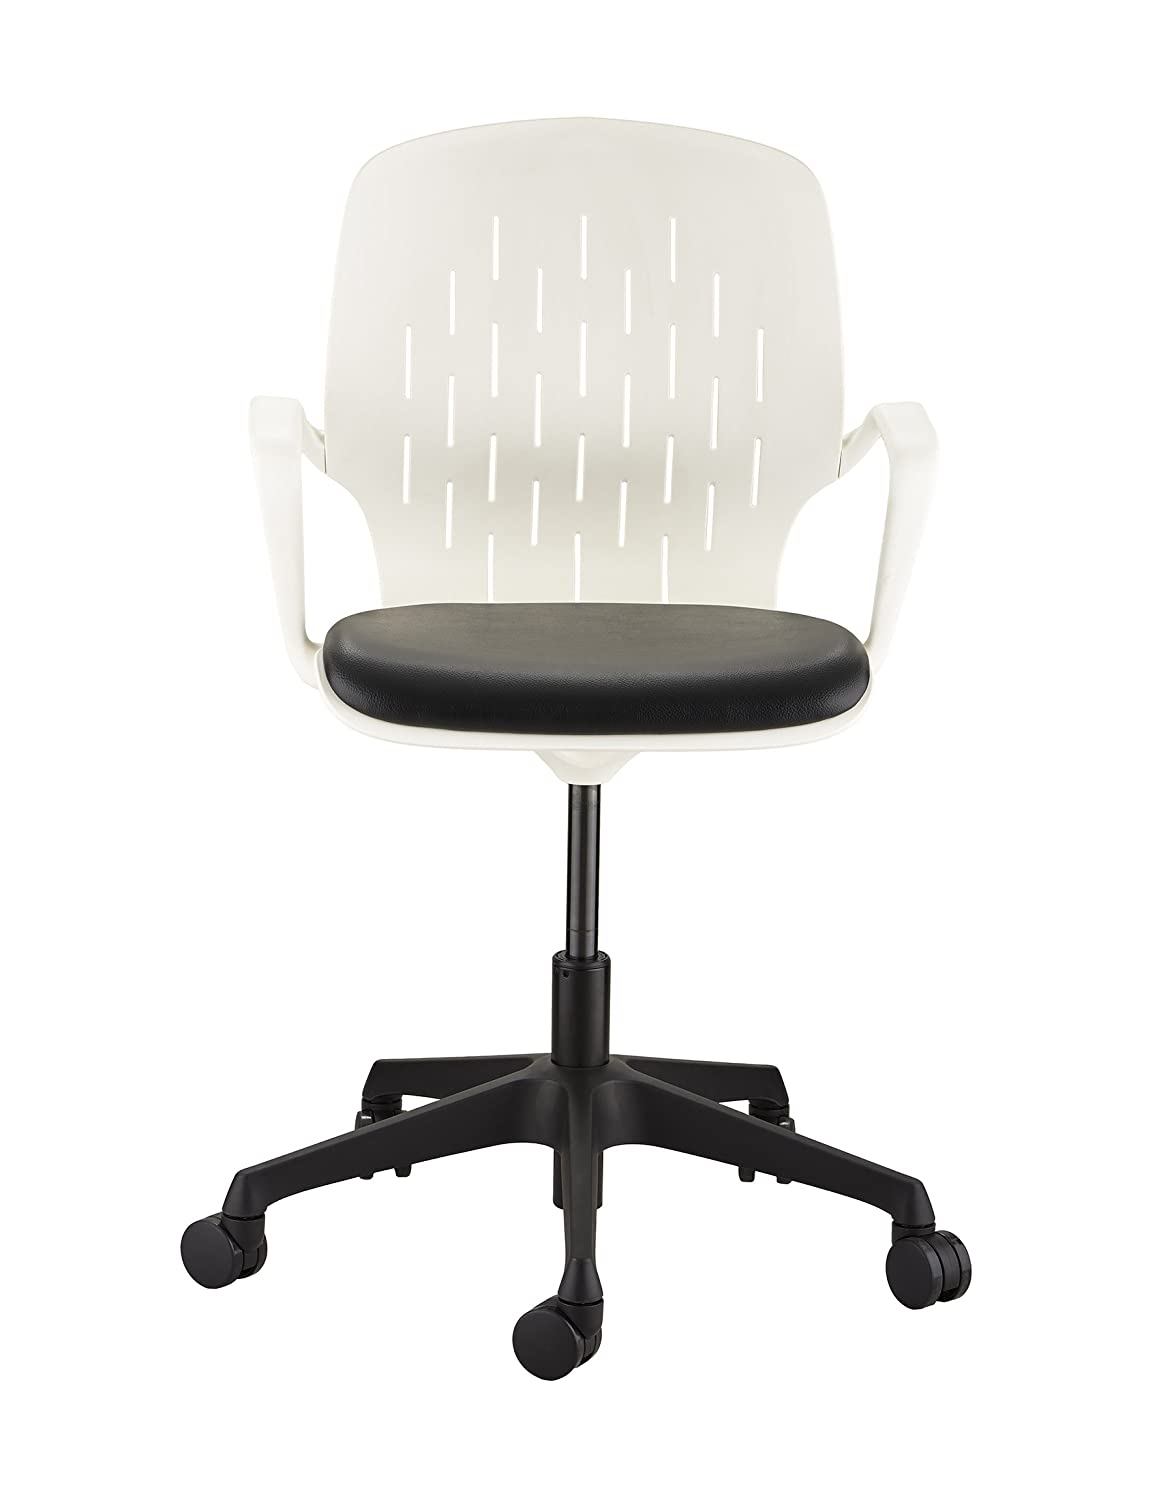 Safco Shell Height-Adjustable Desk Chair, White